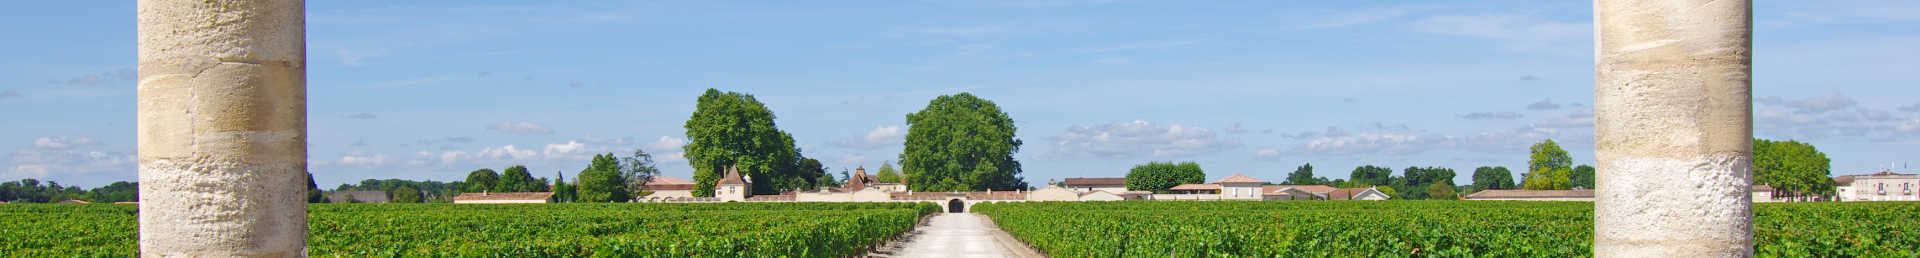 Image for Sauternes Wine Bordeaux, France content section